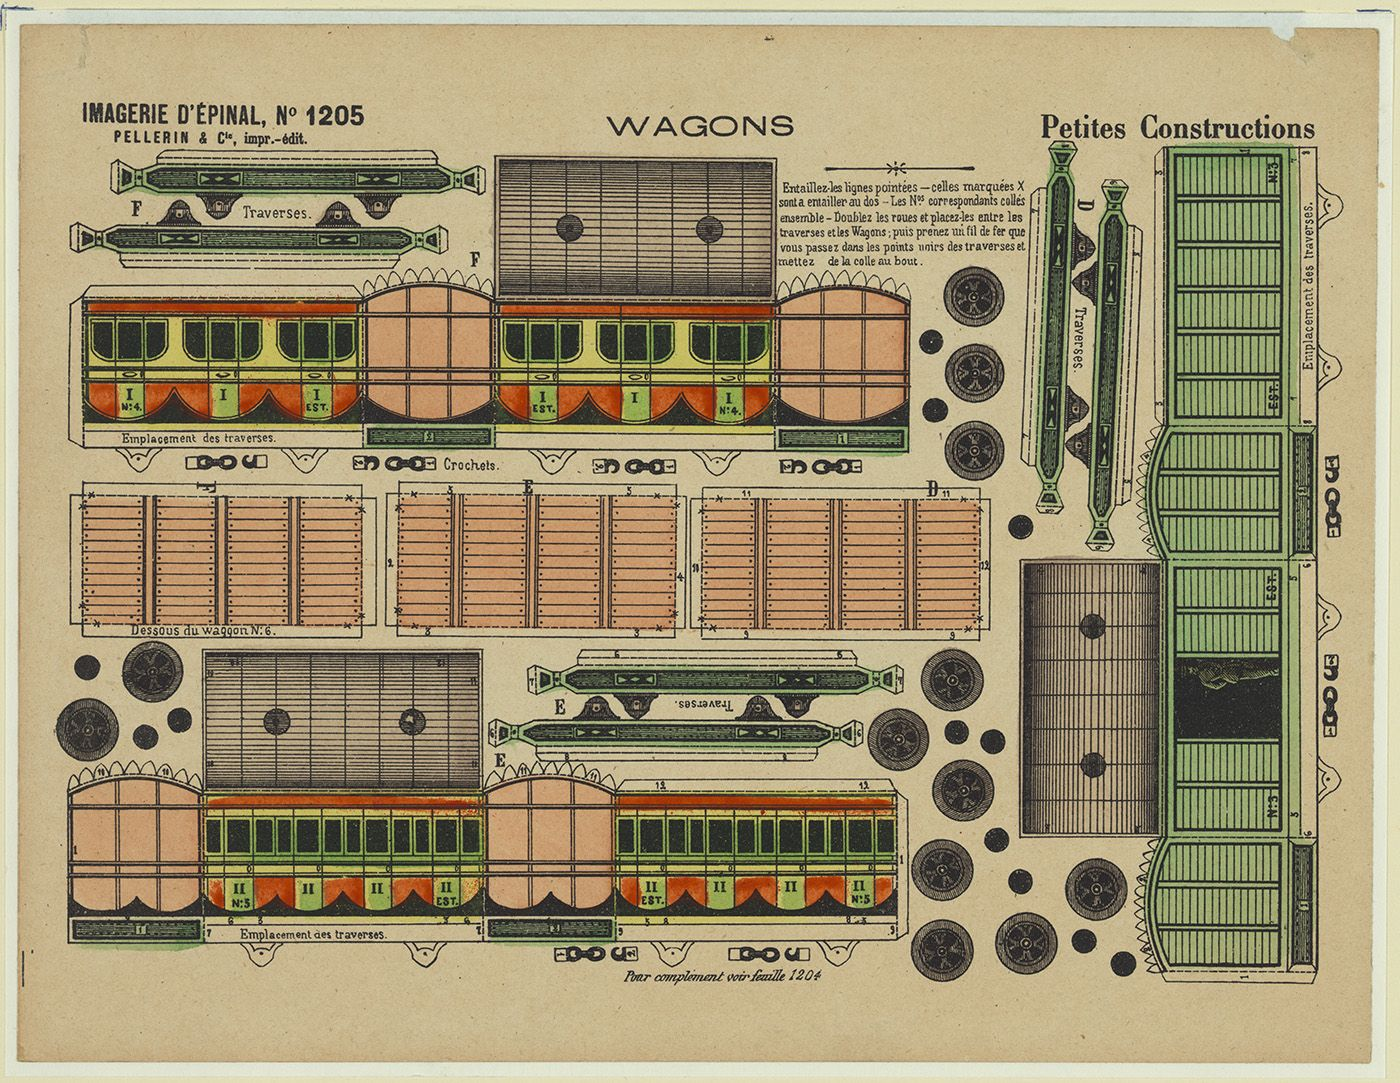 Petites constructions. Wagons / Imagerie d'Épinal. Hand-colored lithograph, printed by Pellerin & Cie, between 1870 and 1900. http://hdl.loc.gov/loc.pnp/pga.04019